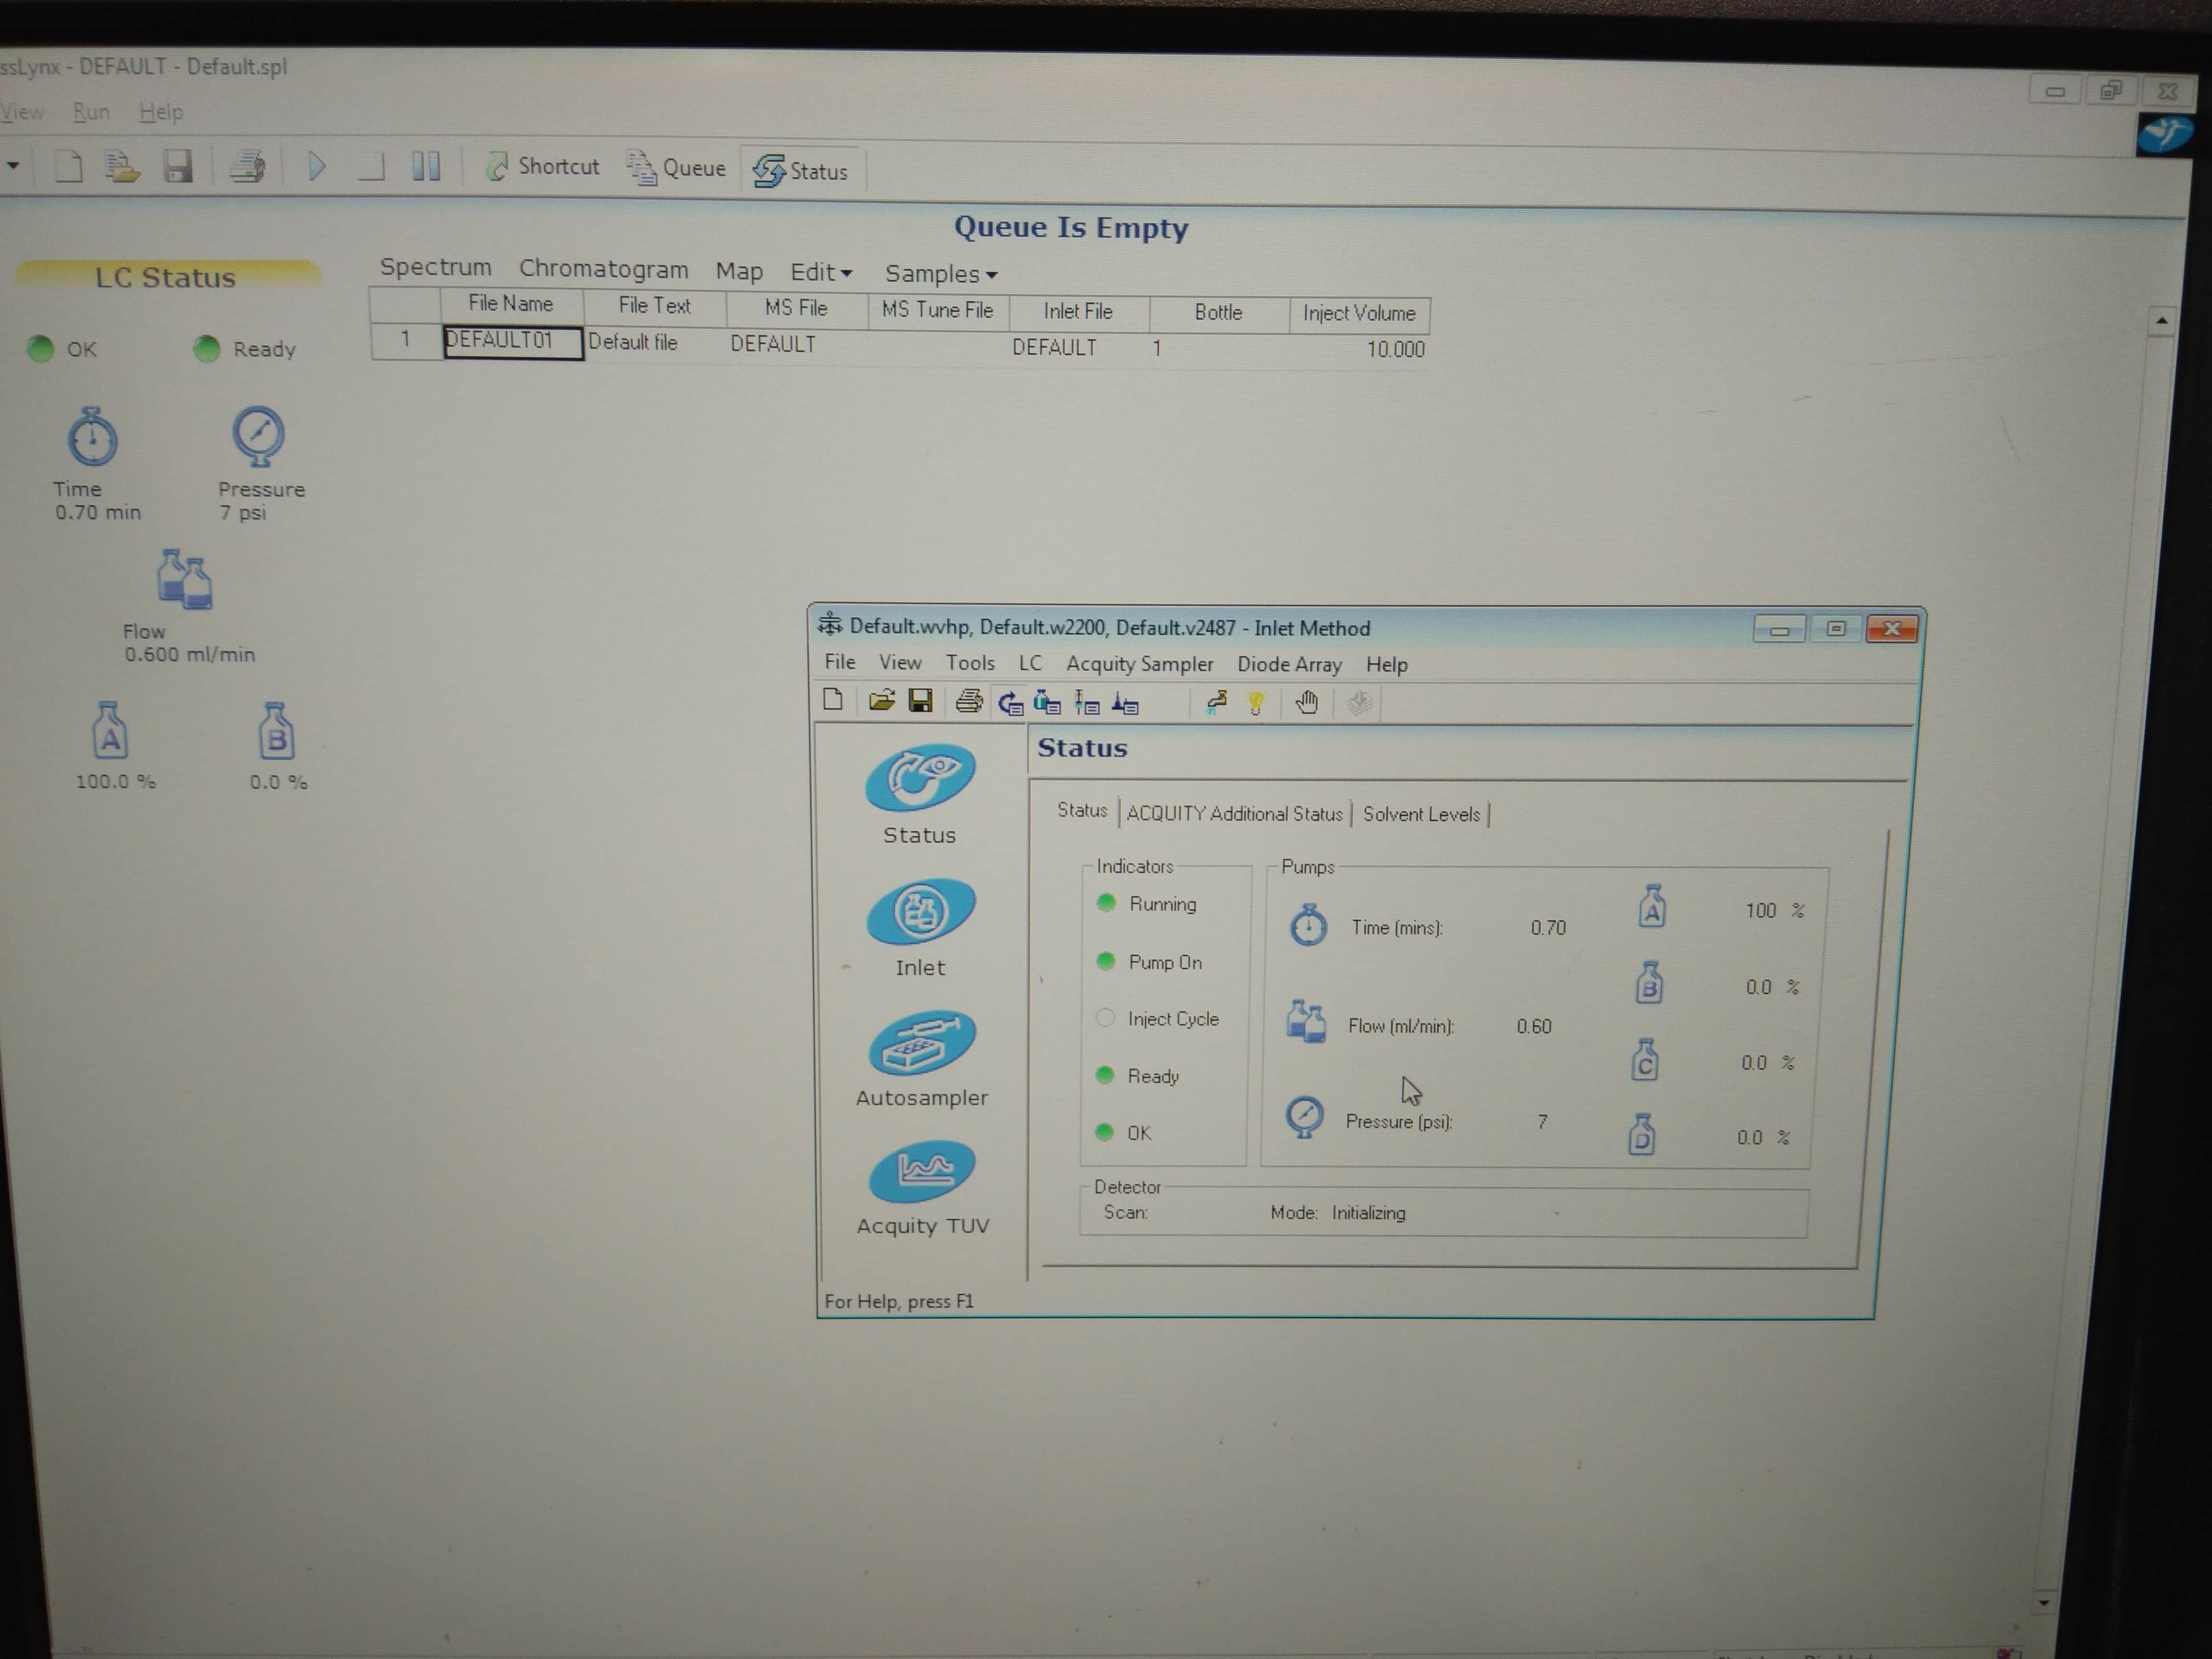 Waters MassLynx 4.1 UPLC Acquity HPLC Software